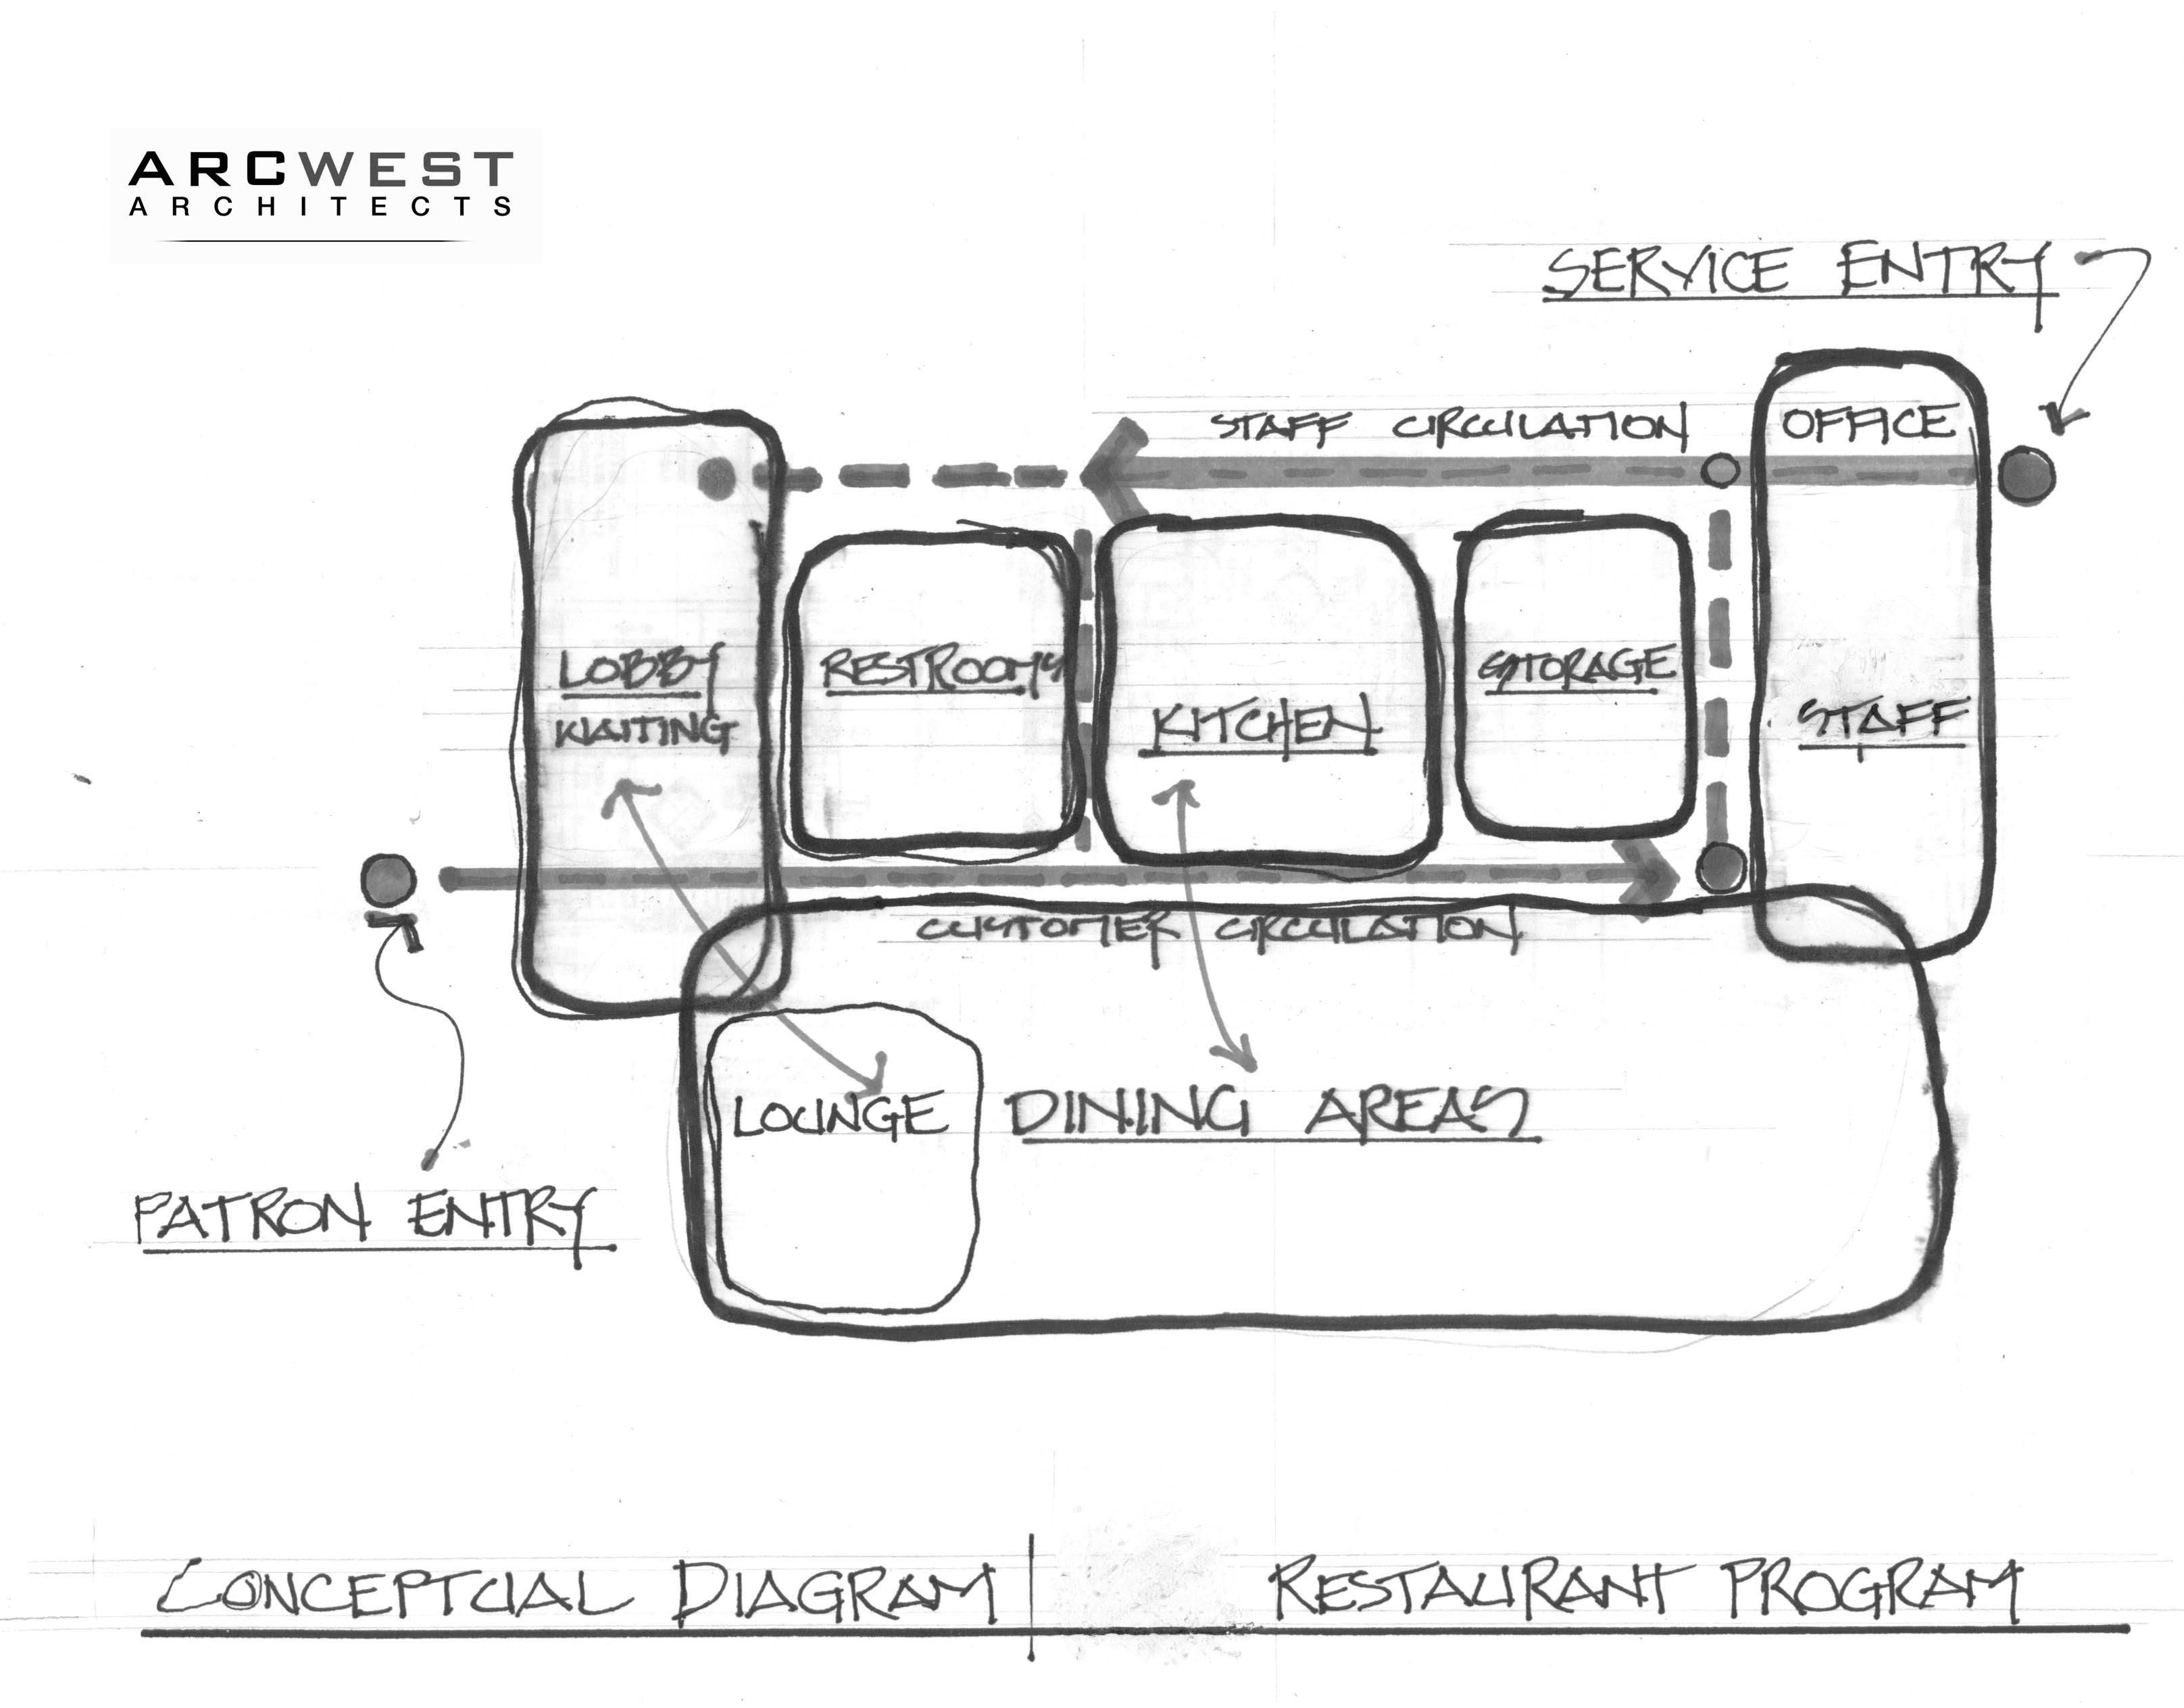 Restaurant program diagram r1 architecture design for Types of architectural design concepts